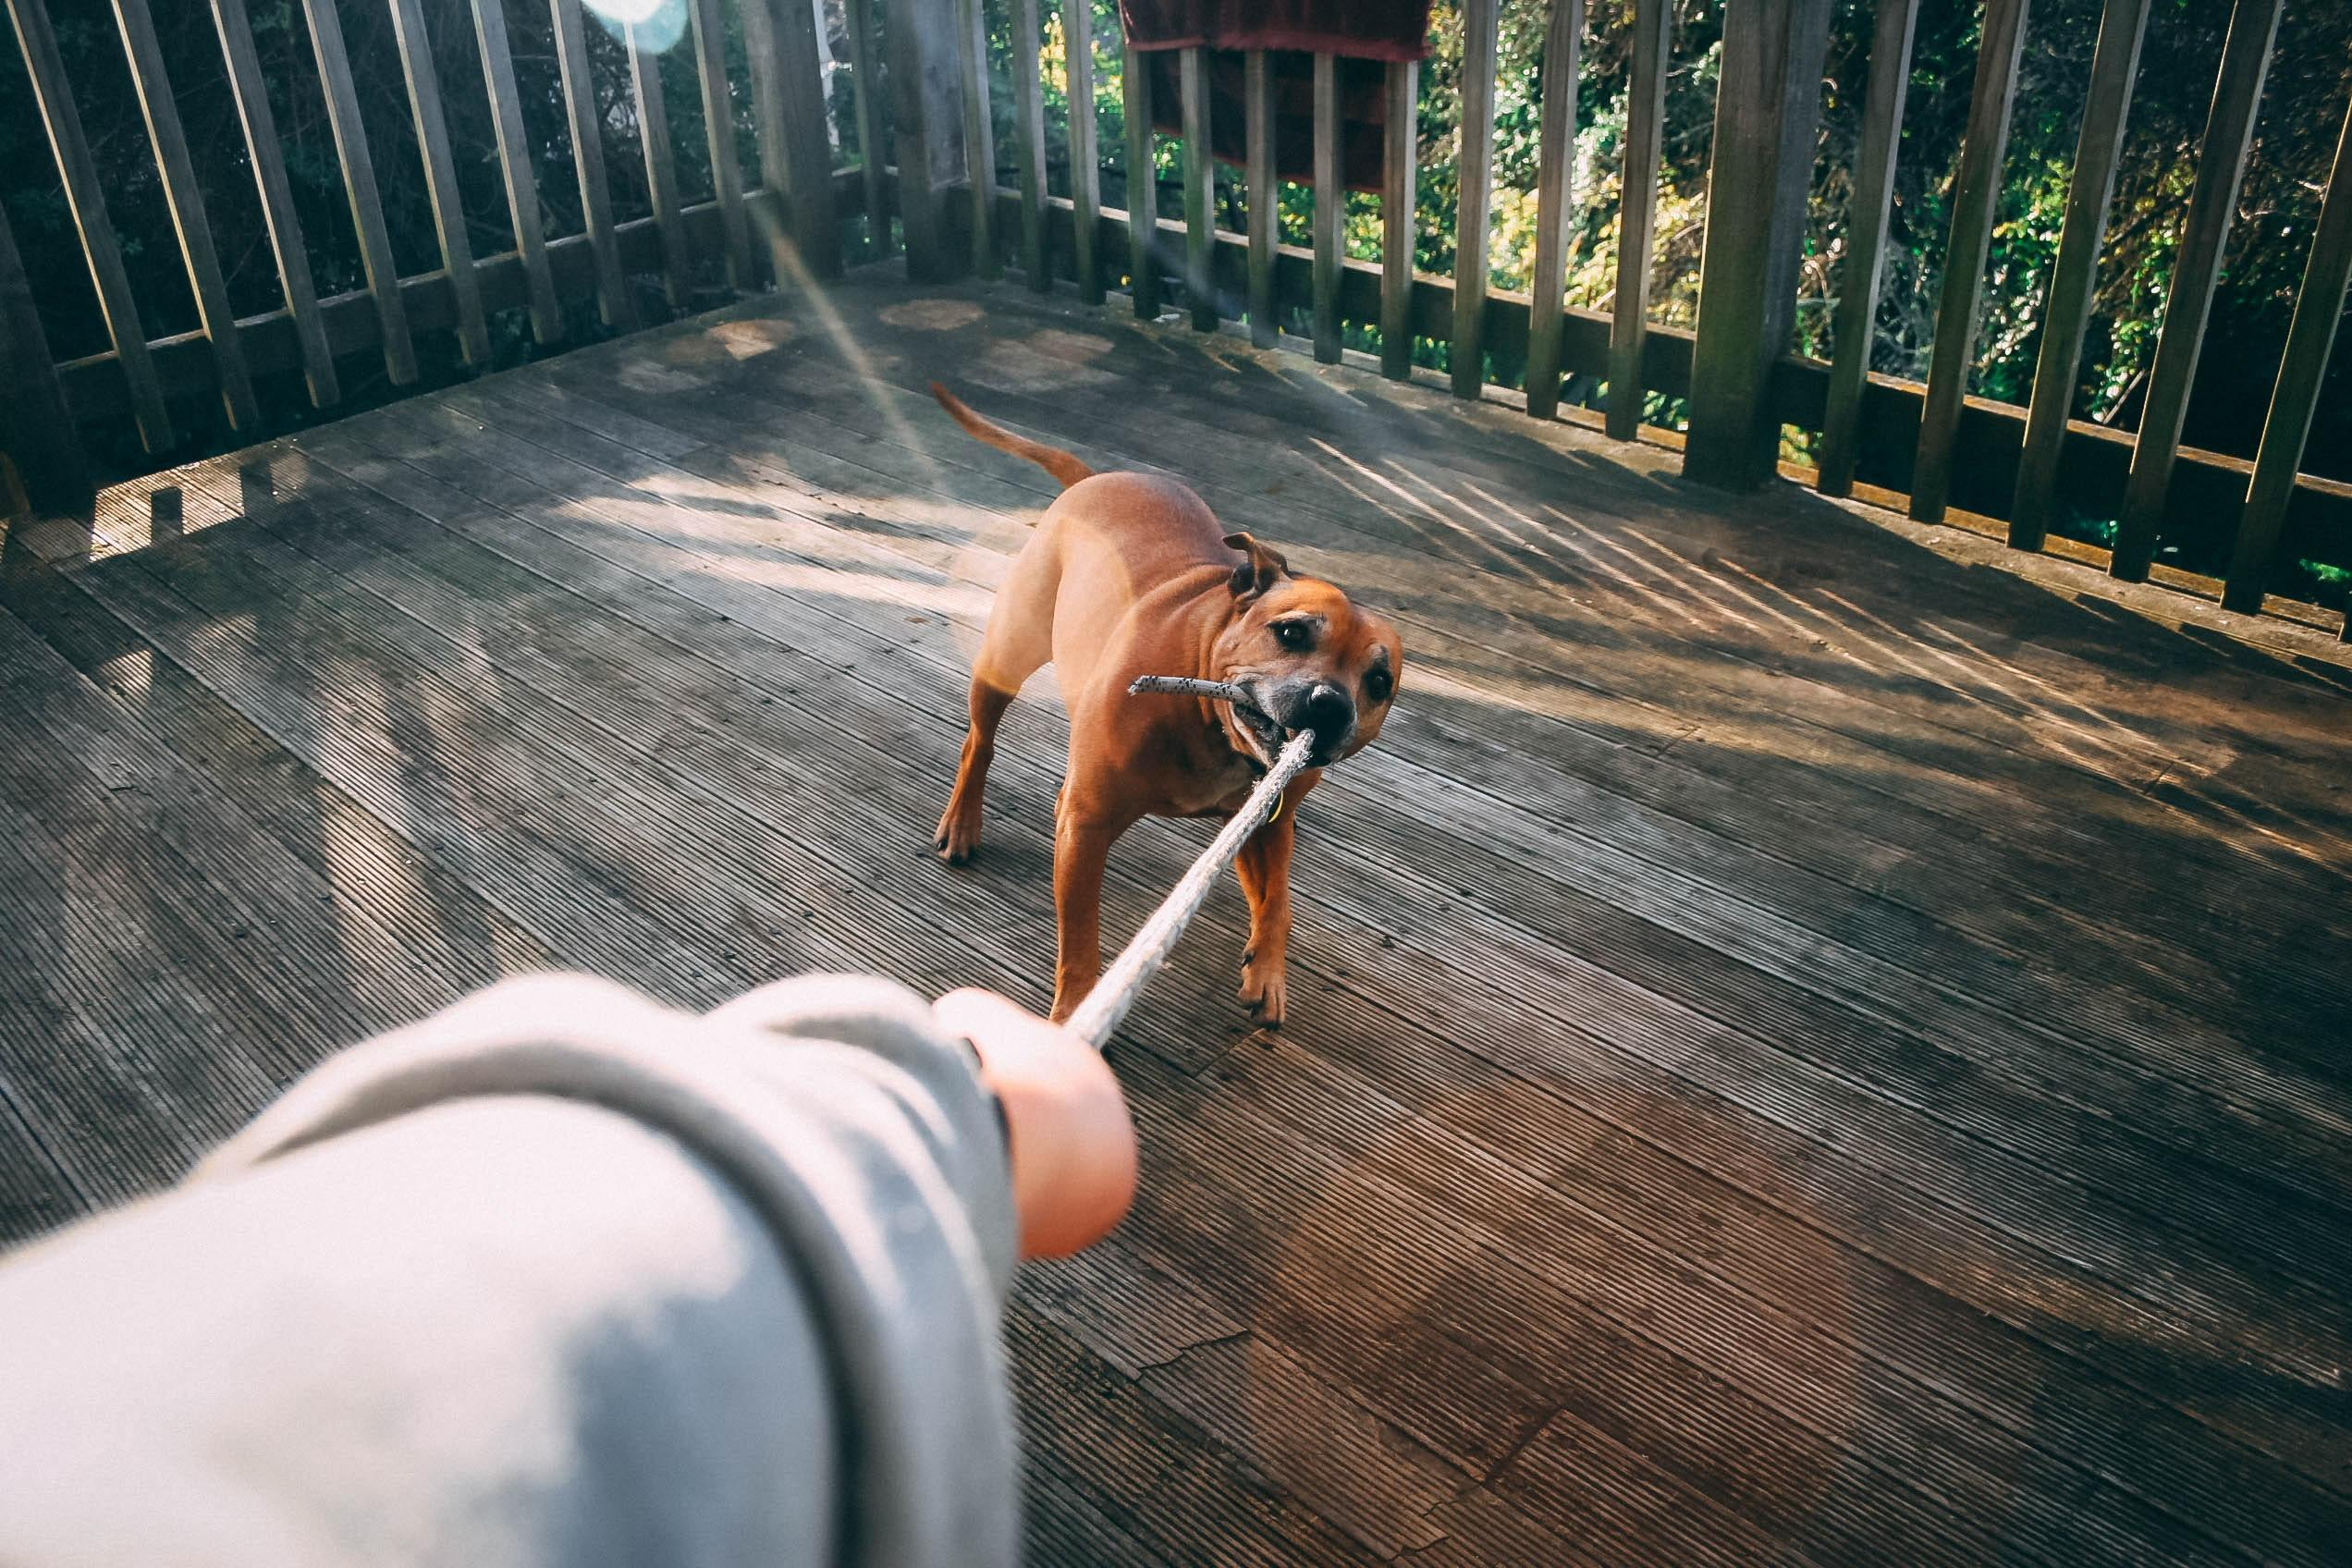 Dog pulling rope that owner is holding on to